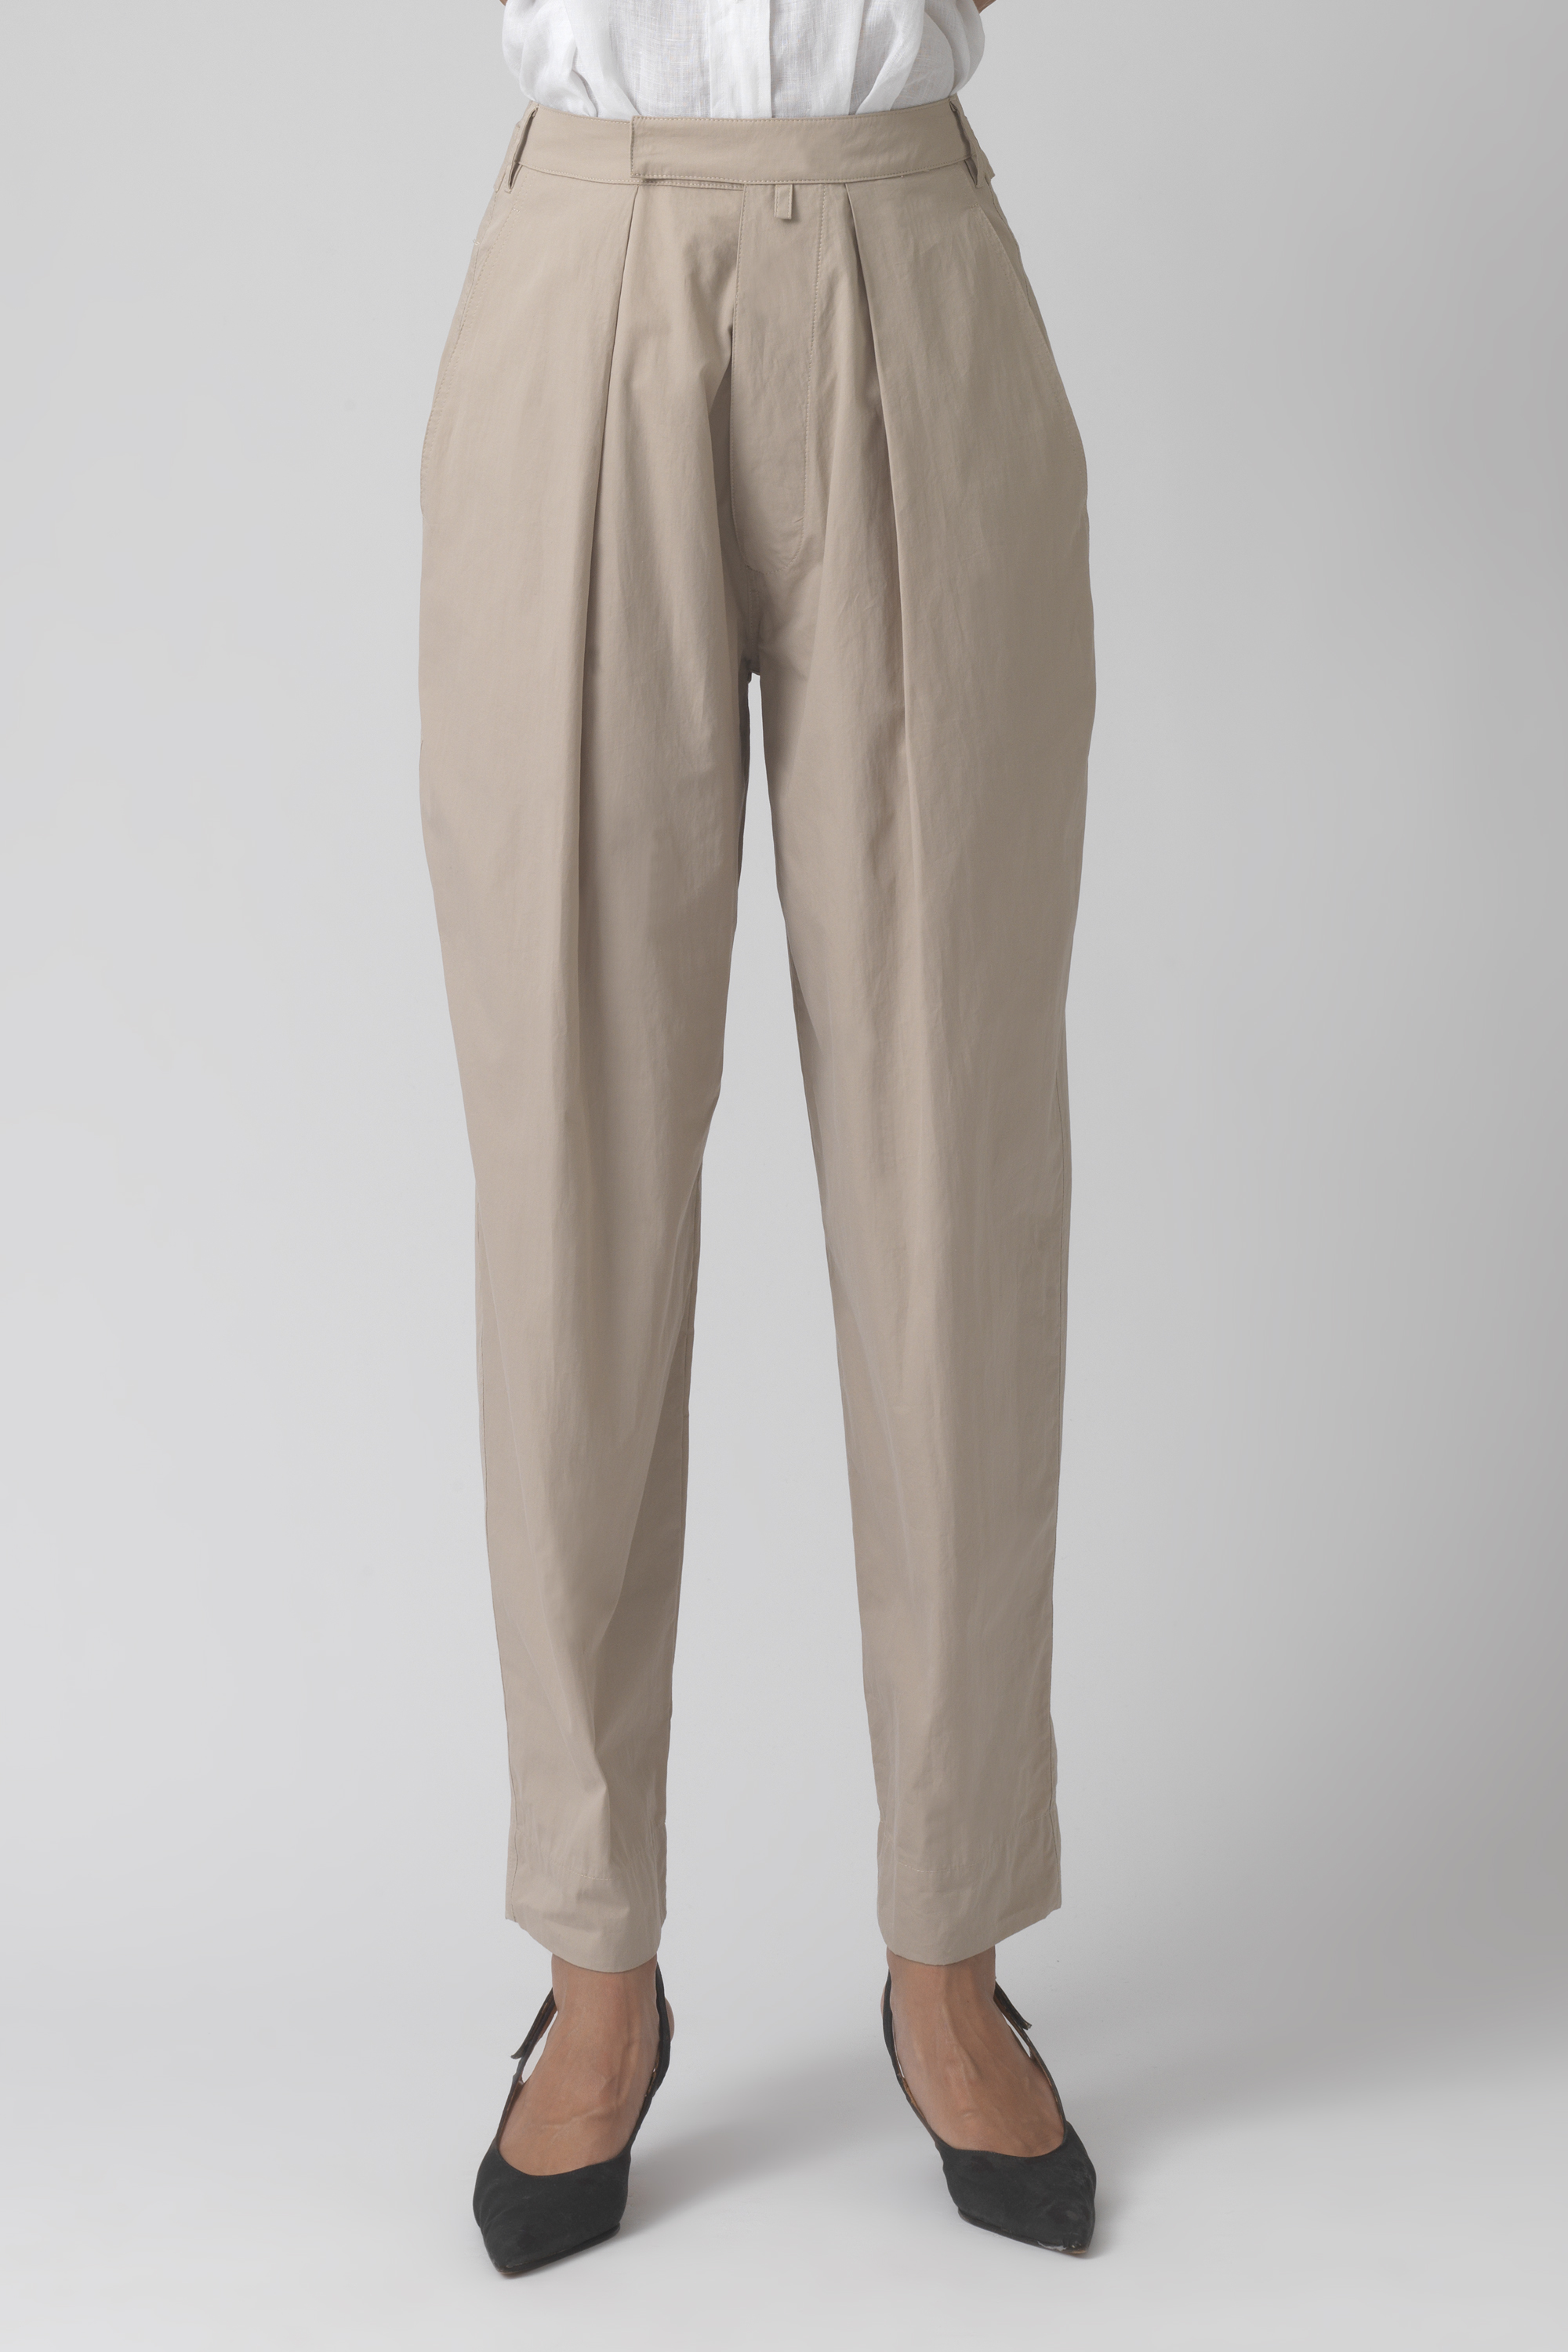 Bonnie sand organic cotton trousers